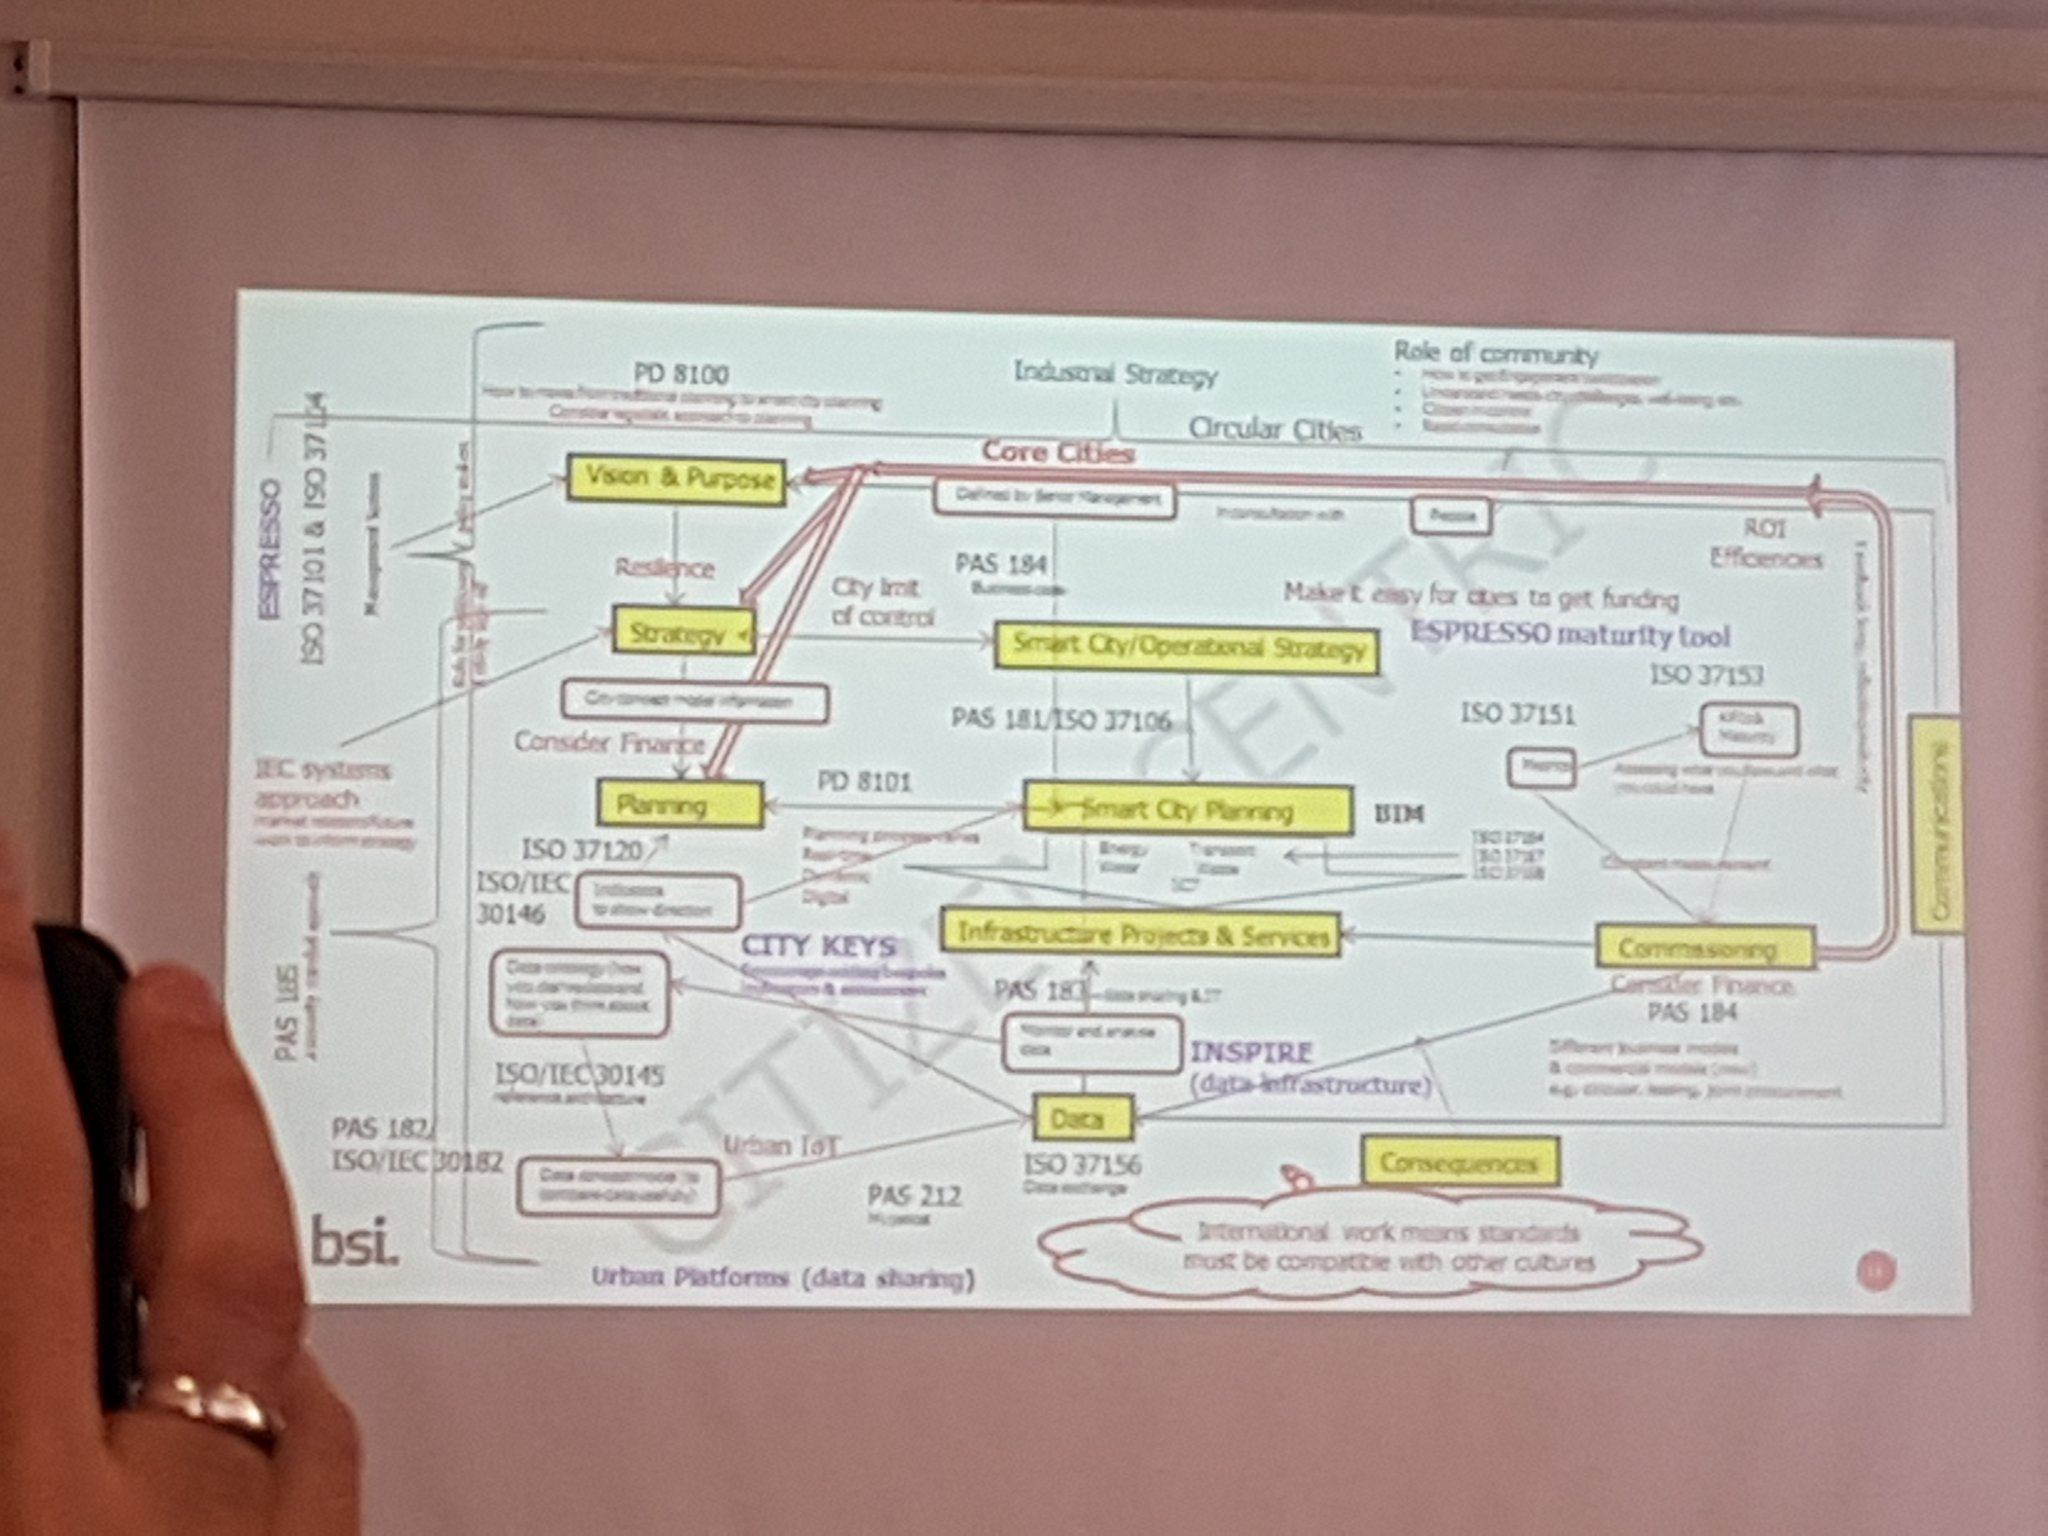 Tom Digby-Rpgers concedes this may be the worst slide ever! #DSFC17 https://t.co/viqKU8a1Km